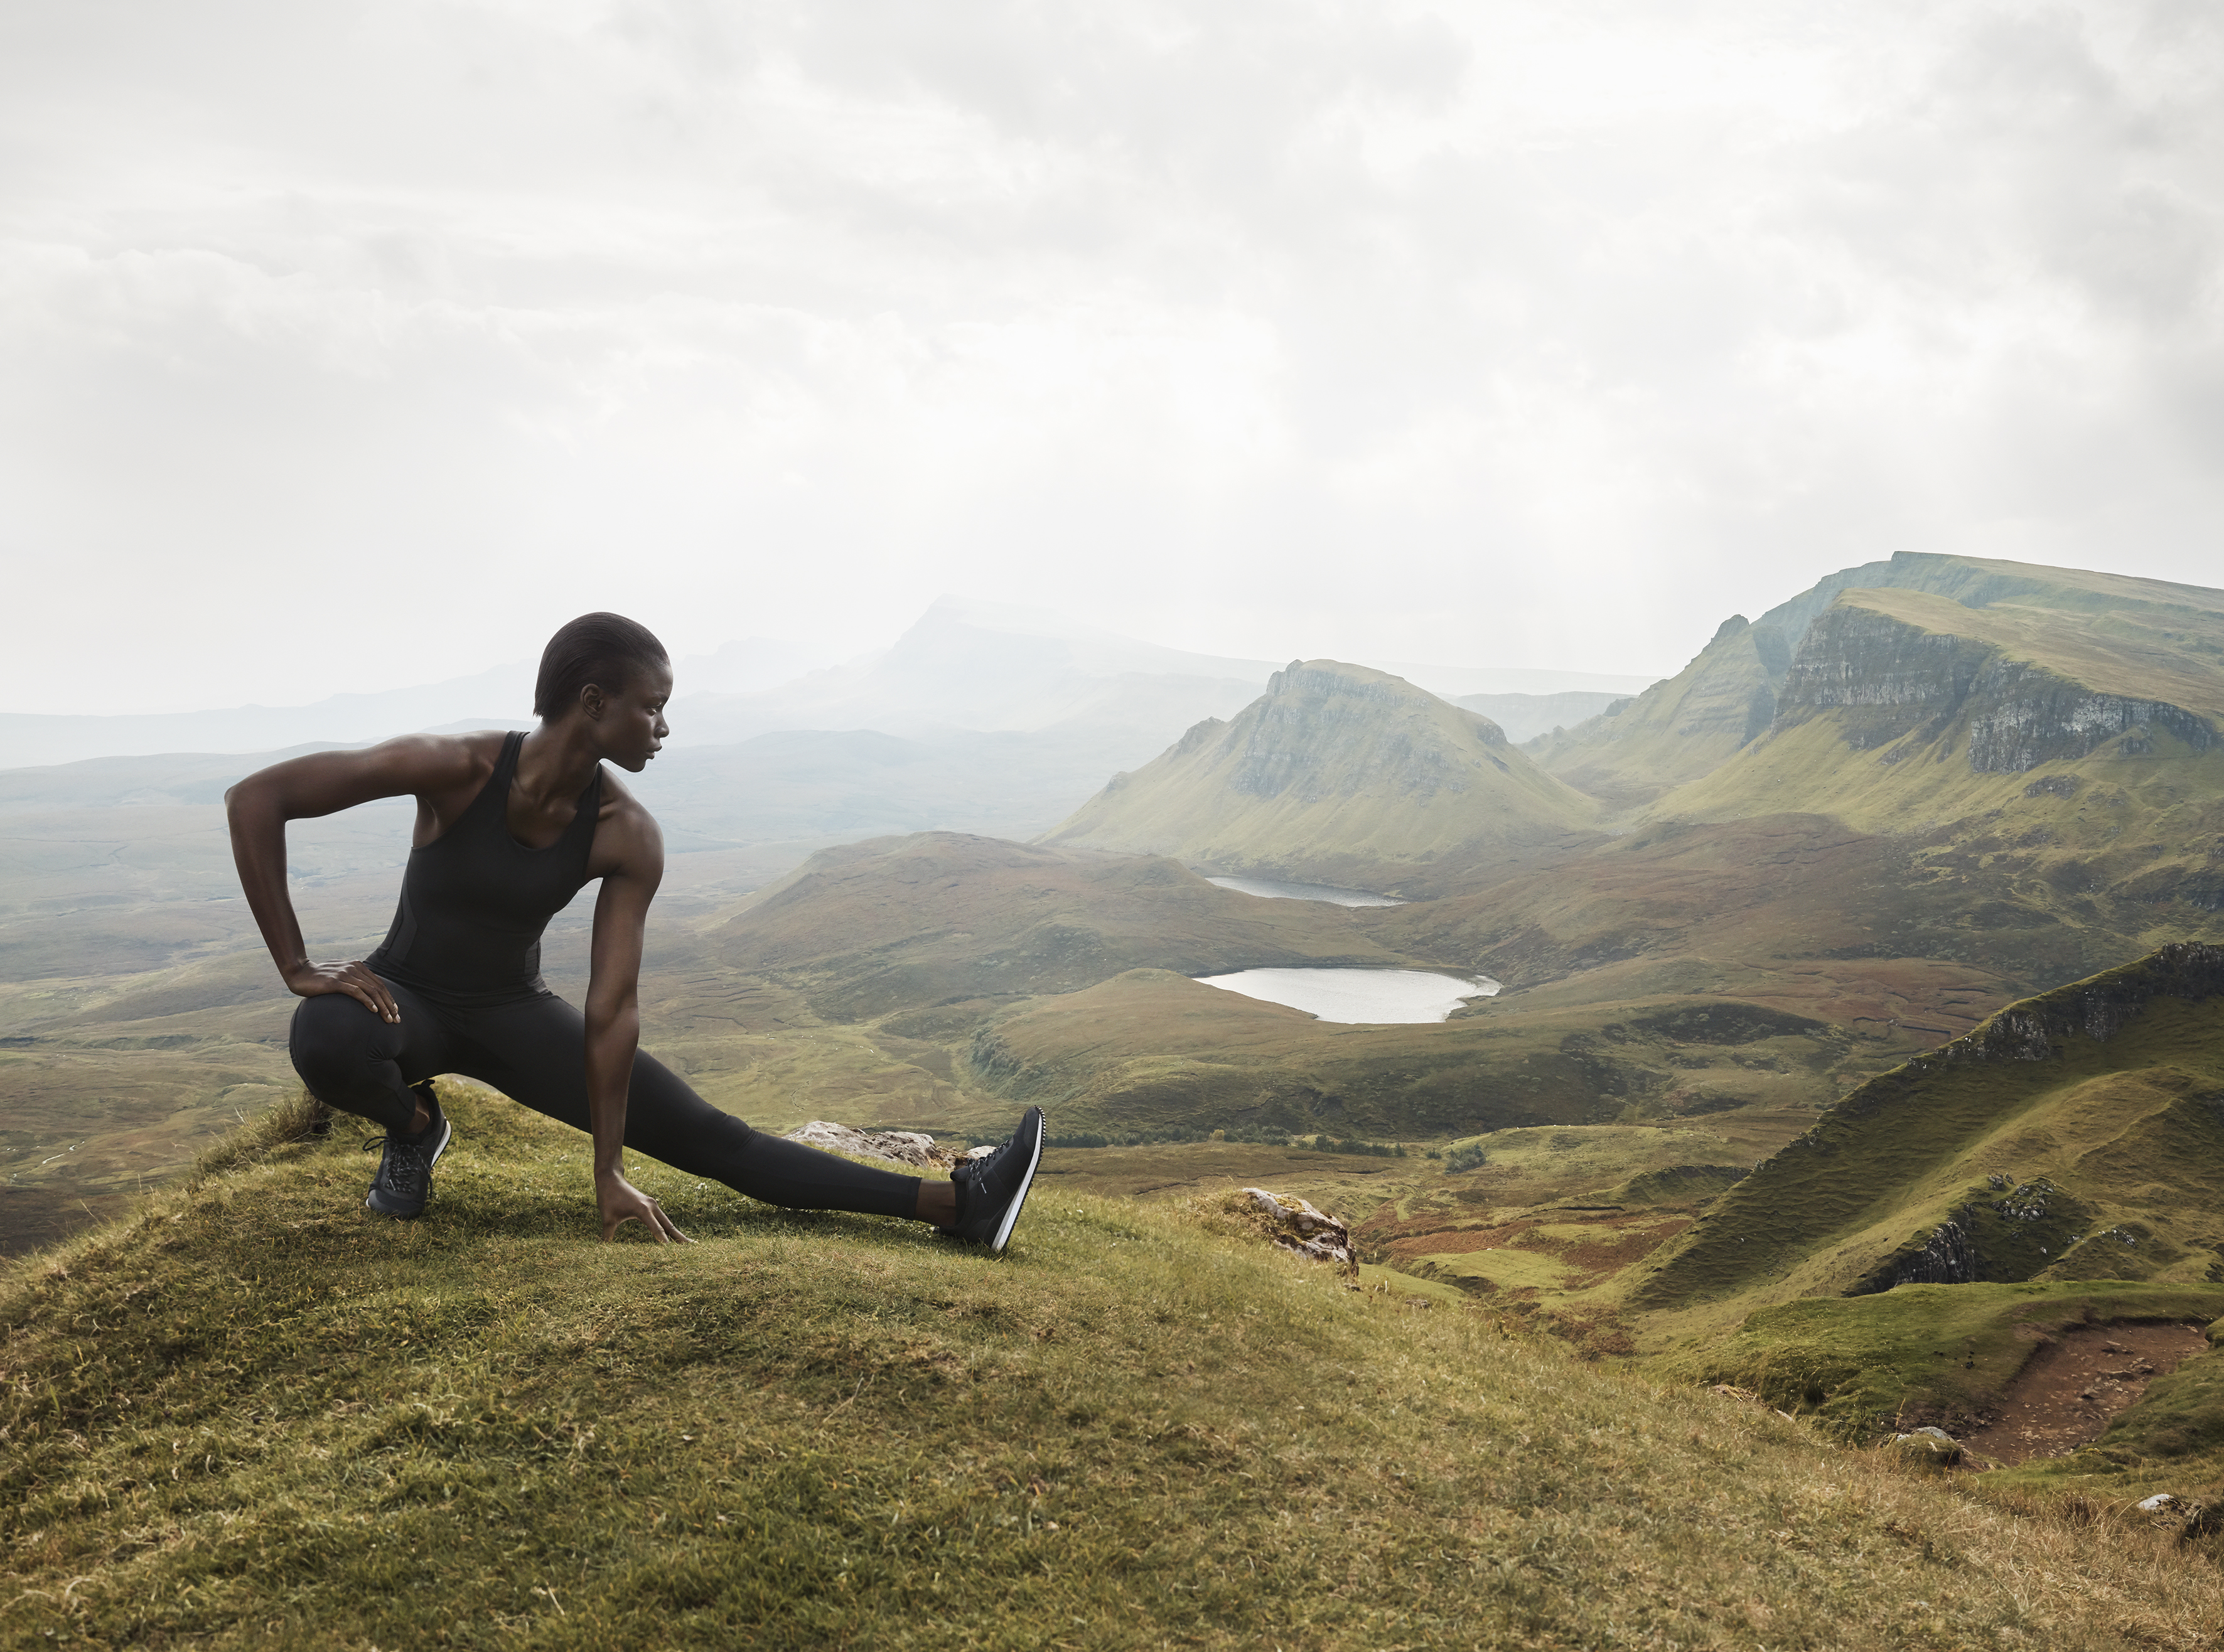 Dark-skinned woman stretching on mountain top